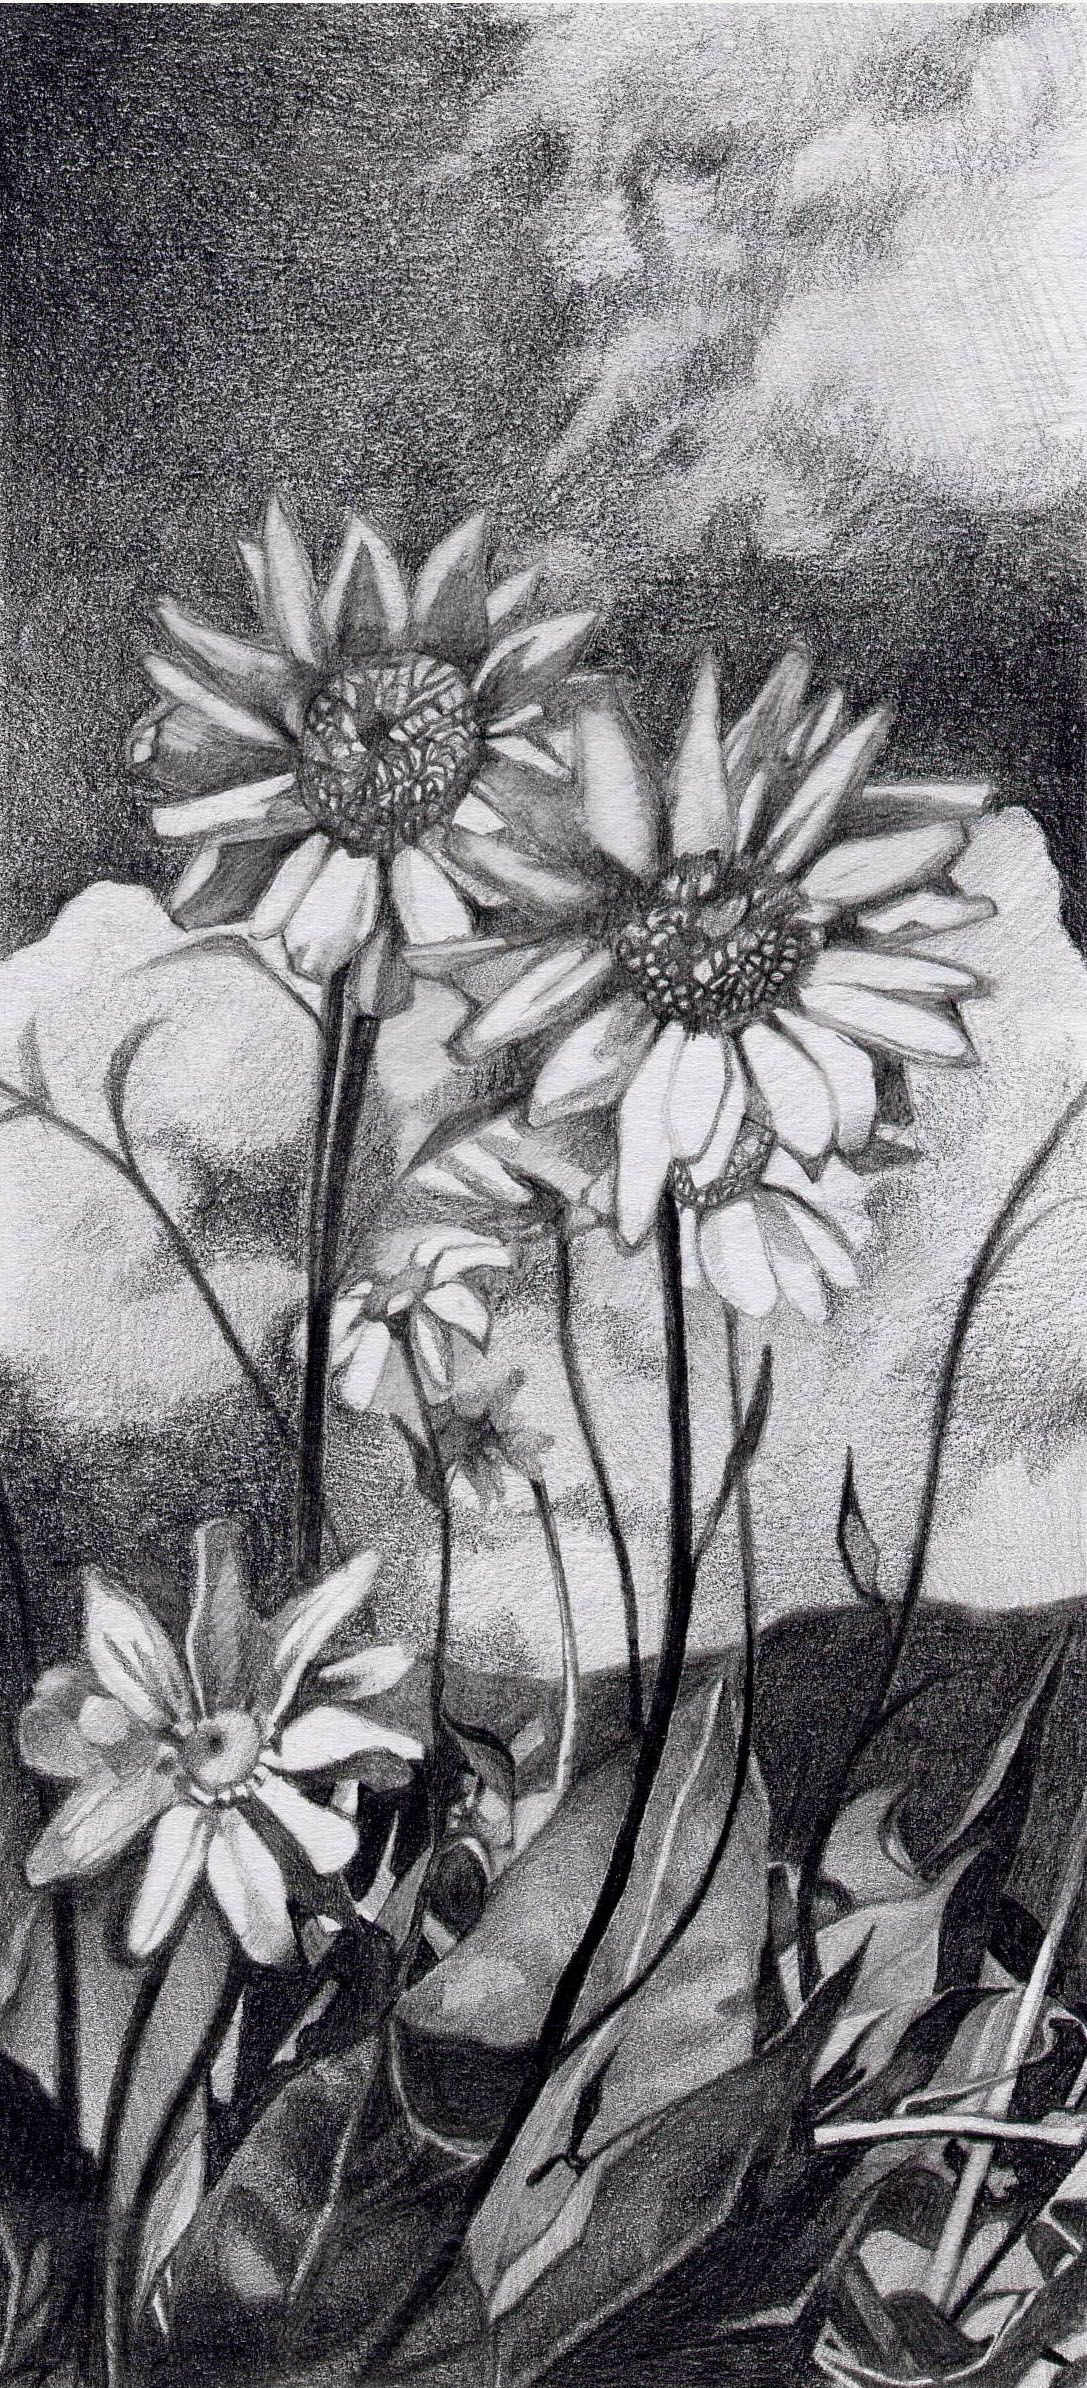 Graphite daisy drawing. (With images) Daisy drawing